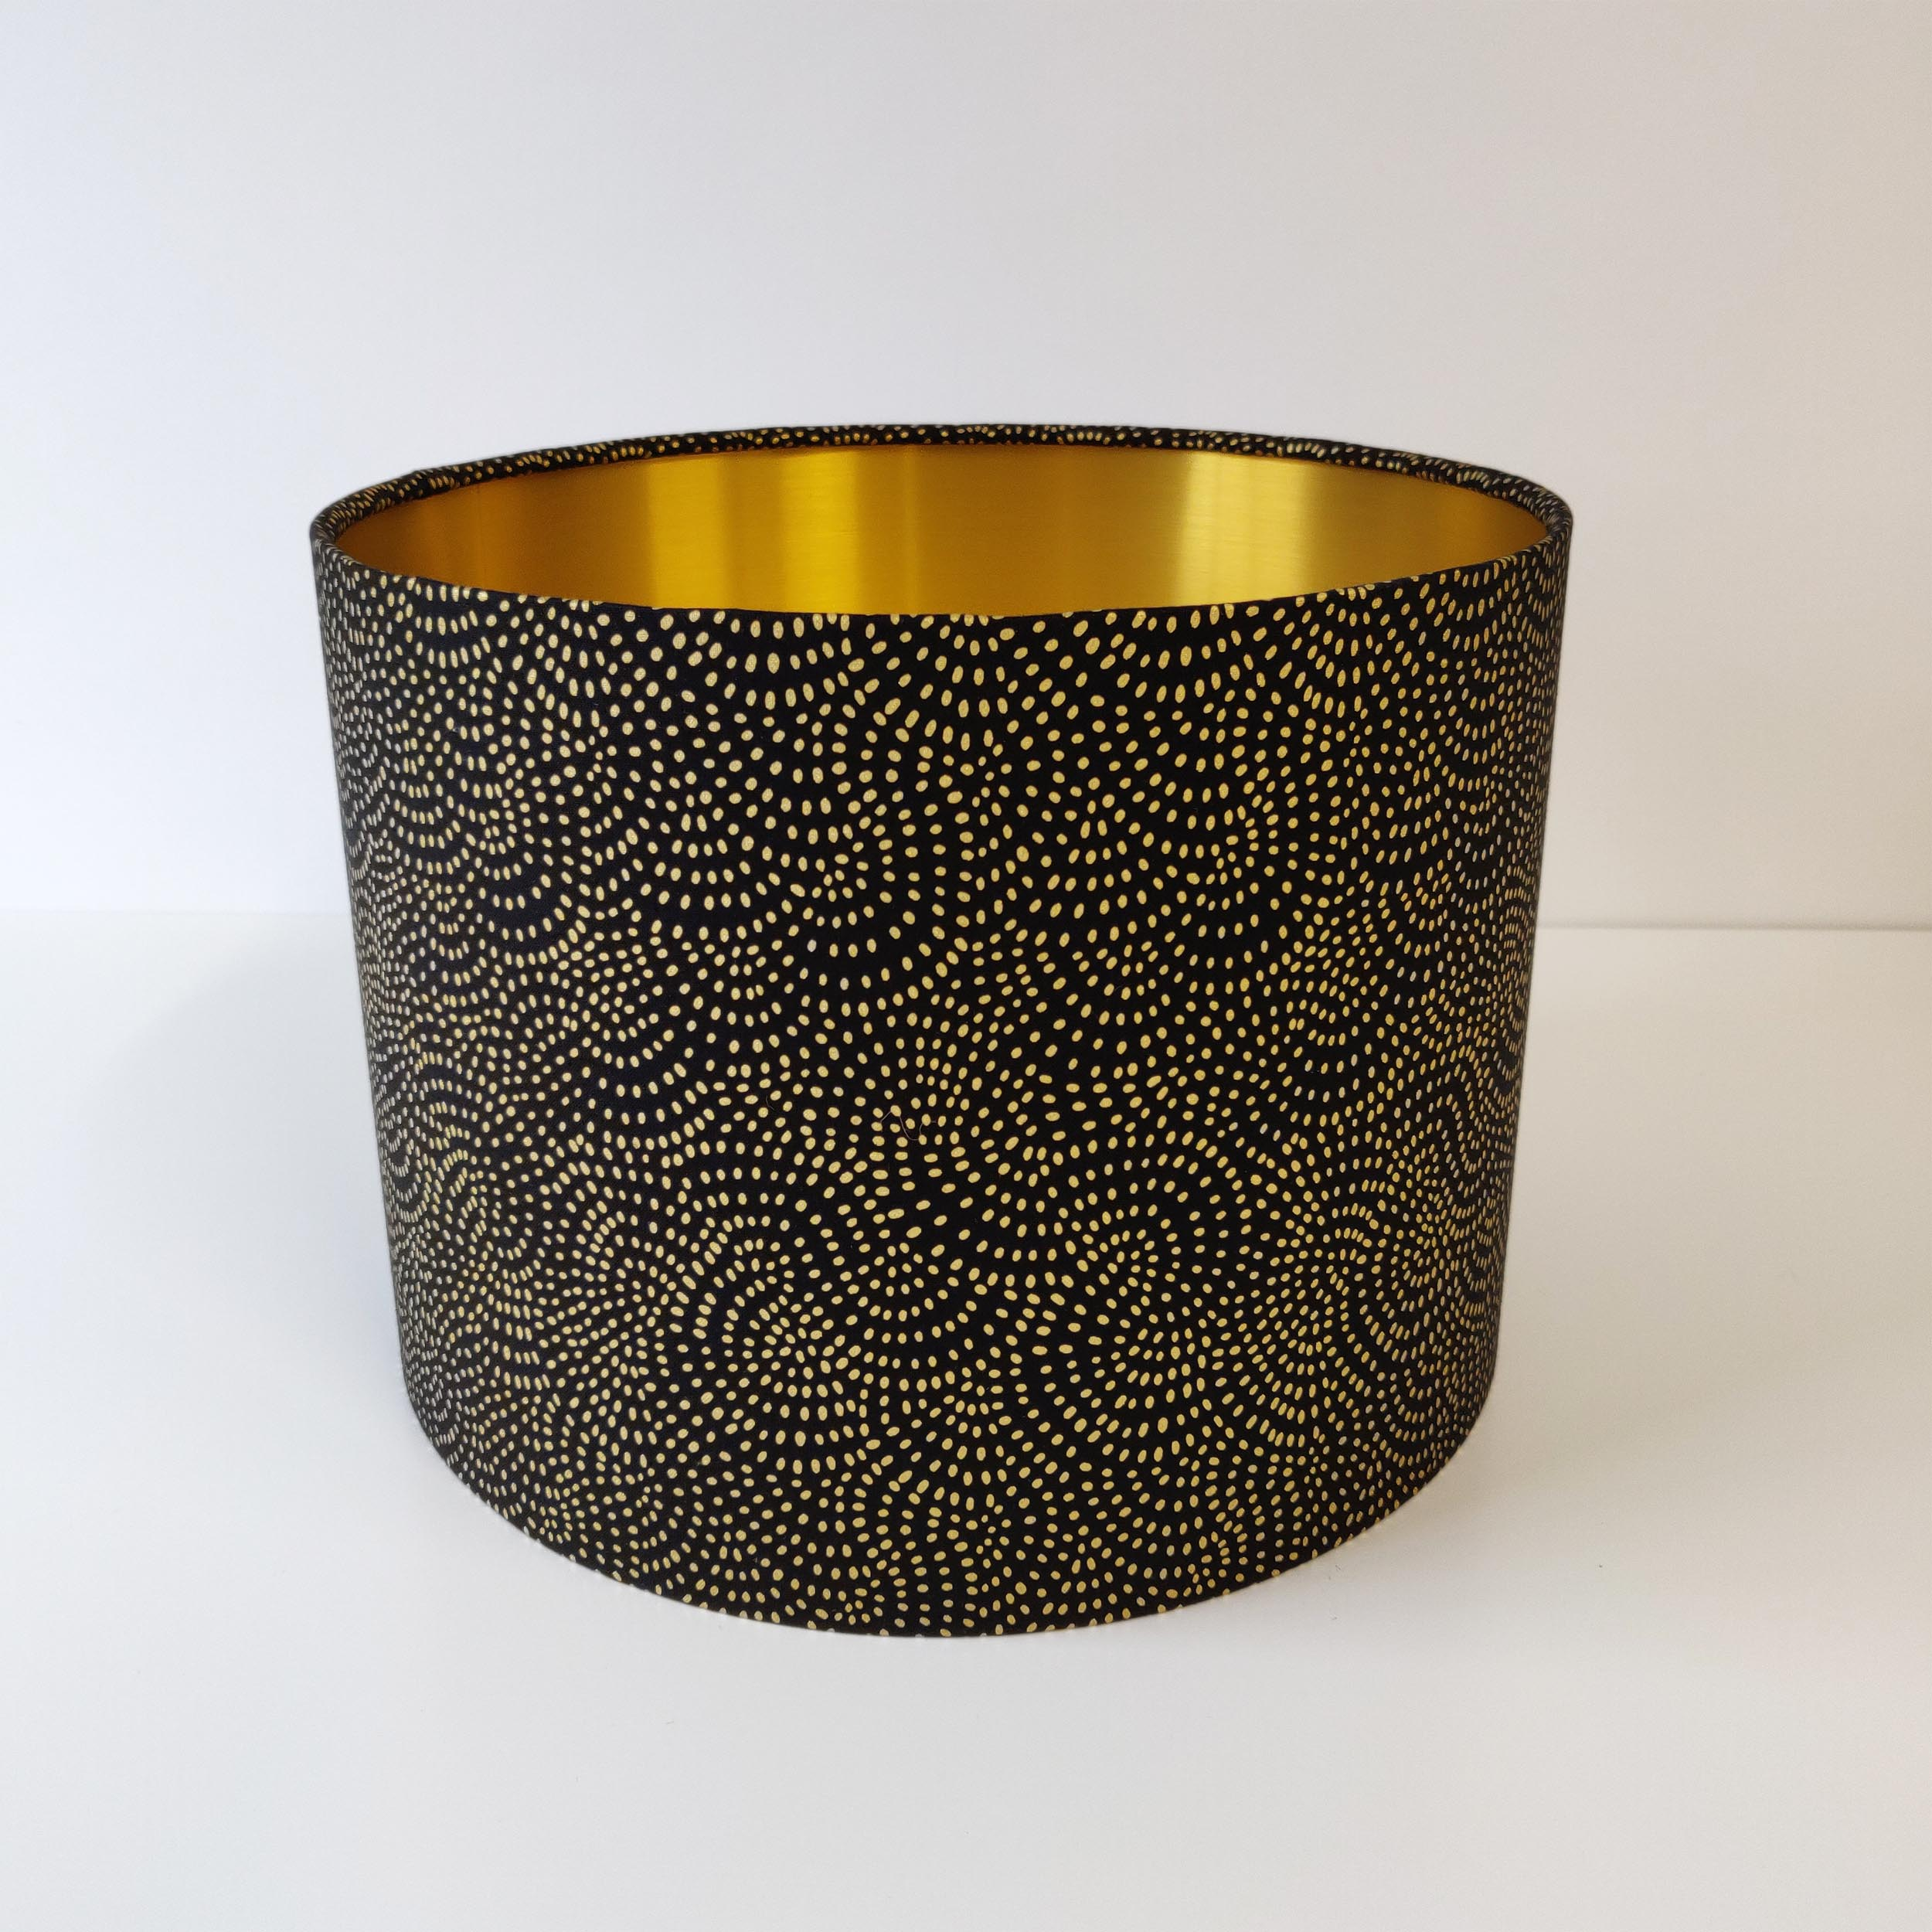 Black and Gold Lamp shade with Gold Lining